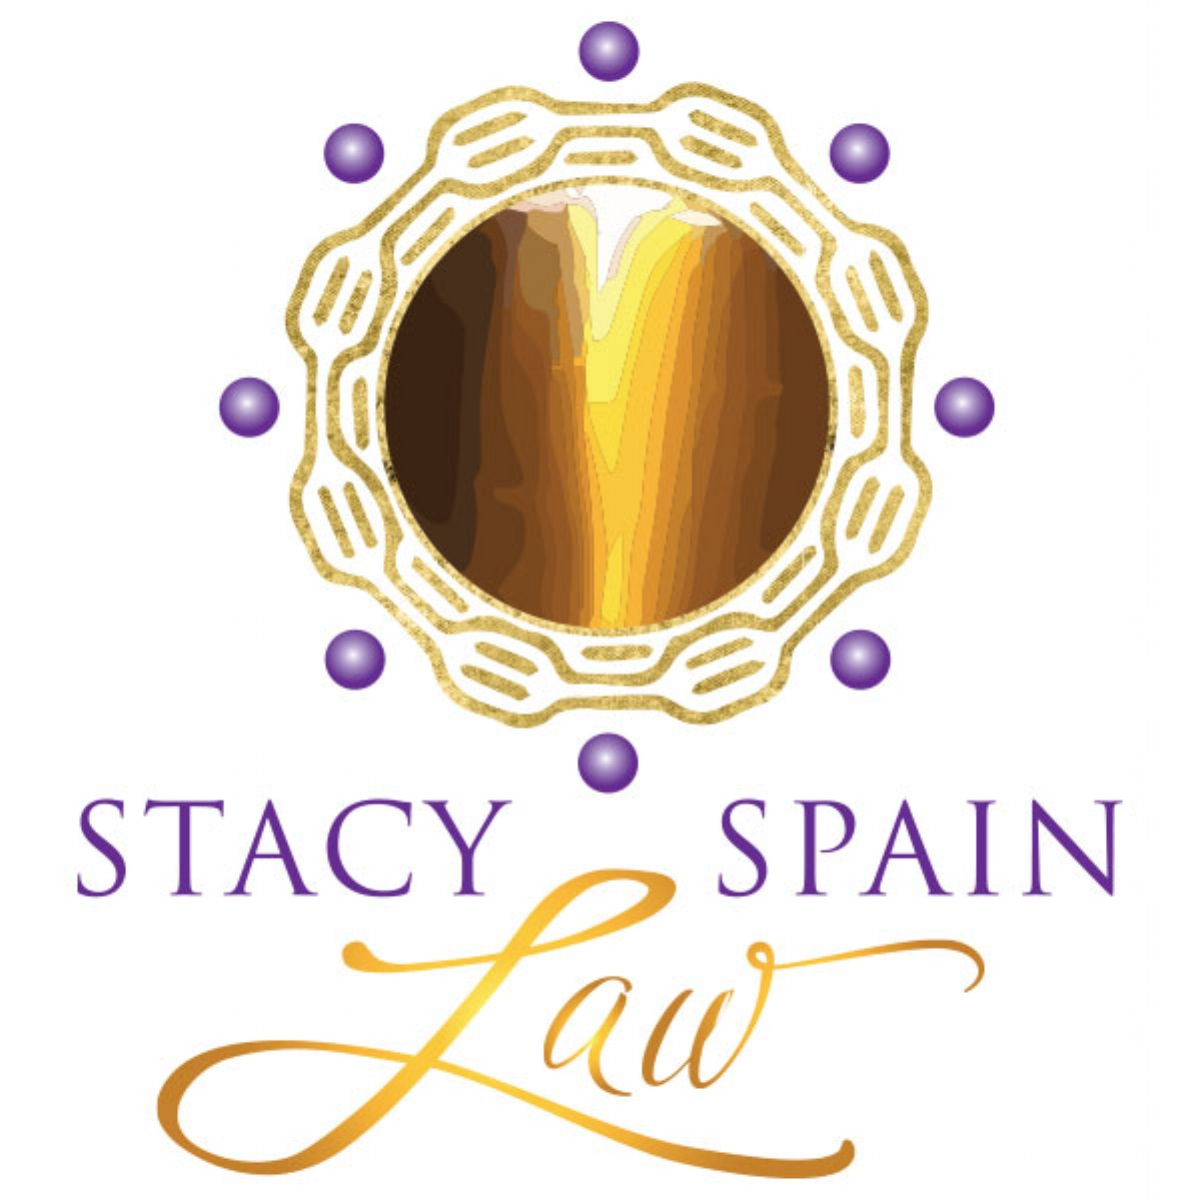 Stacy Spain Law